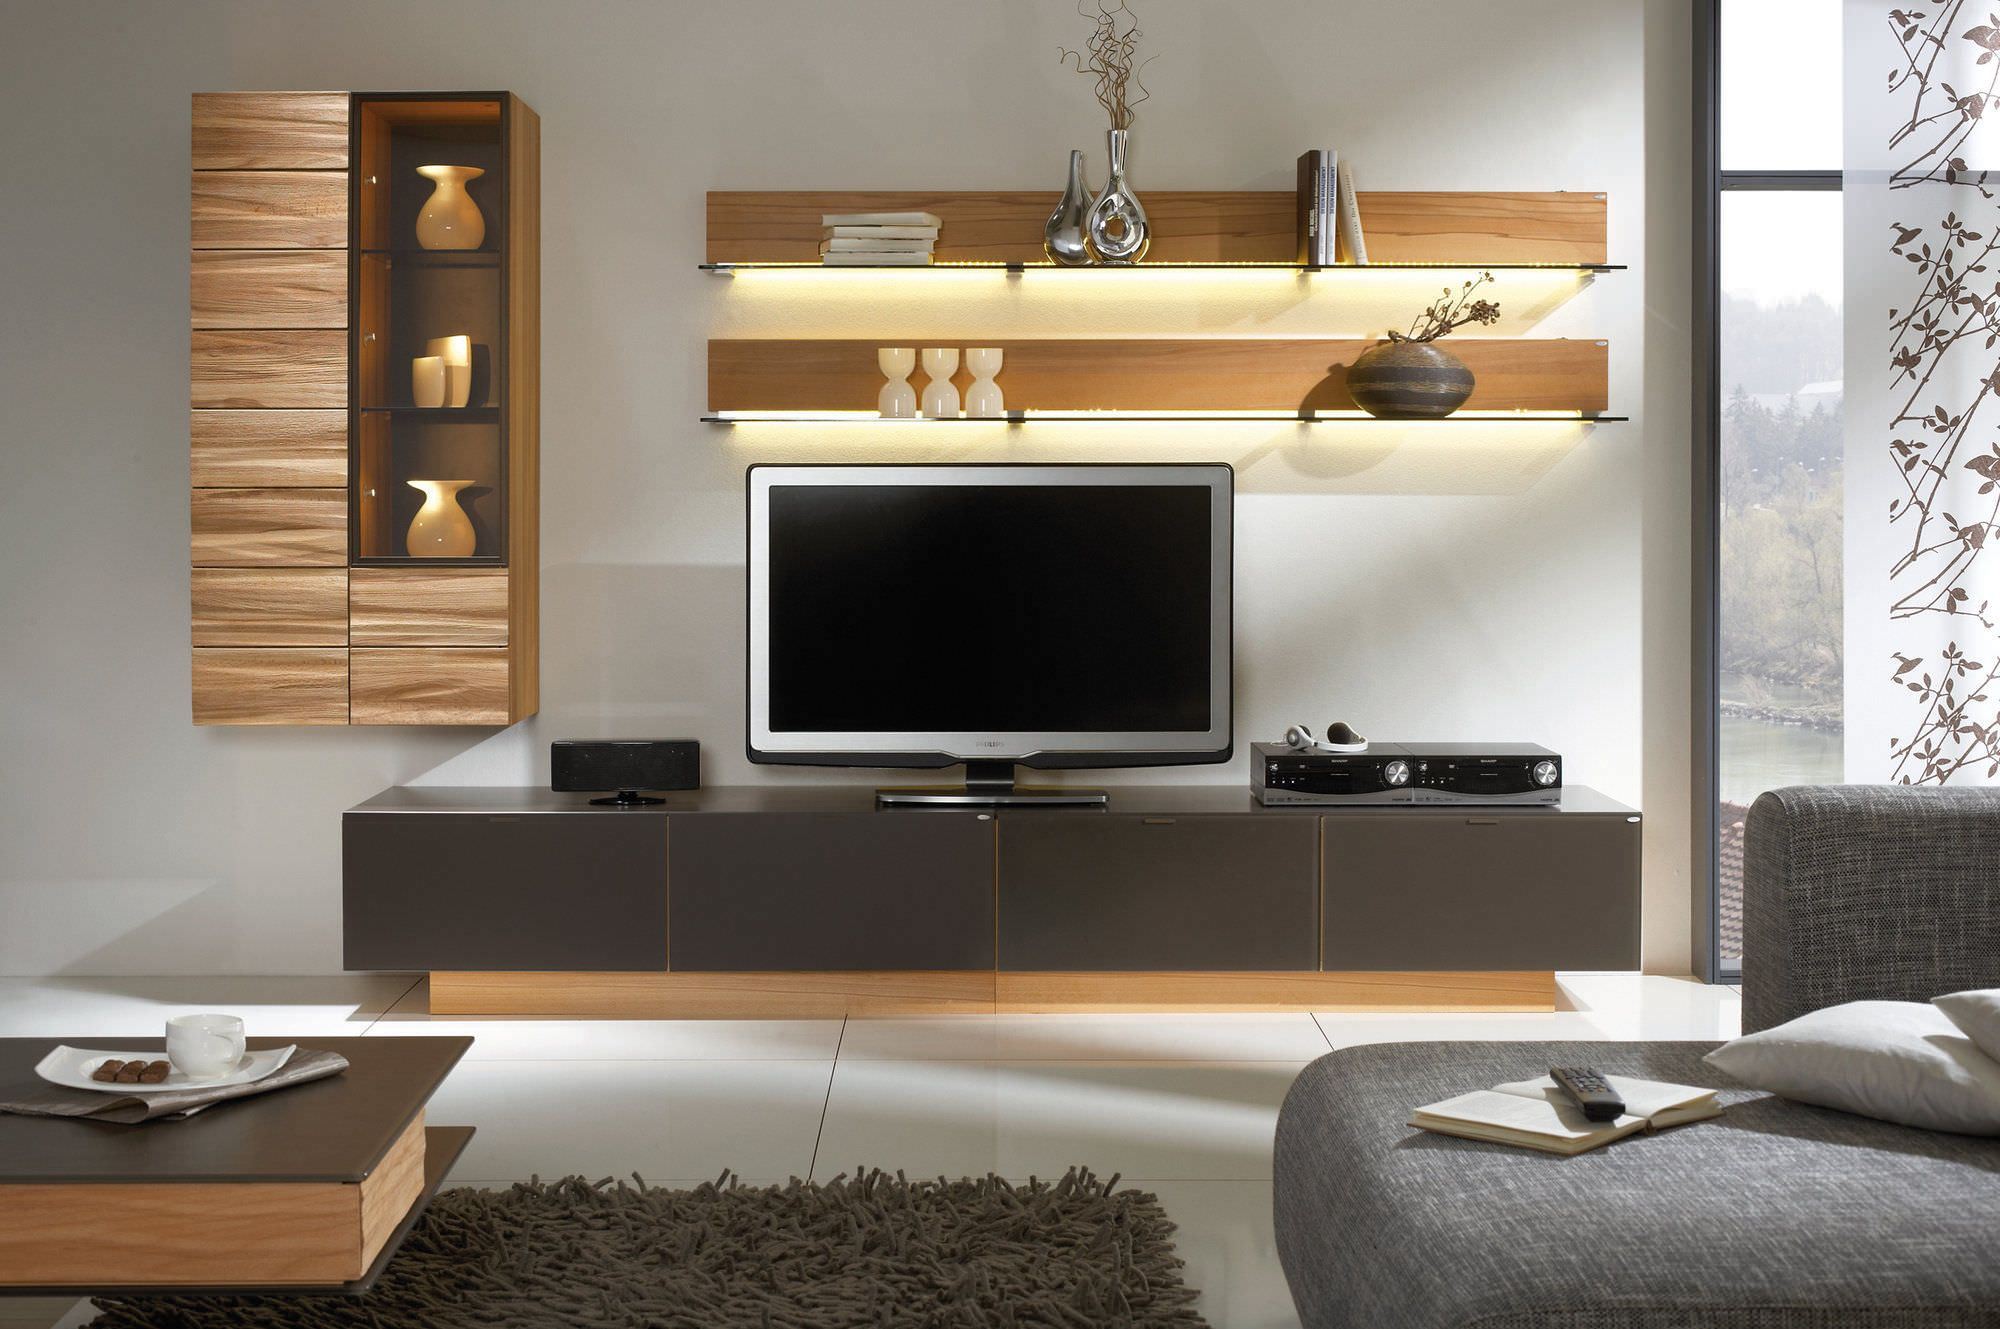 How To Decorate With The 2015 Trends Versa Style Design Wall Tv Unit Design Wall Unit Designs Living Room Tv